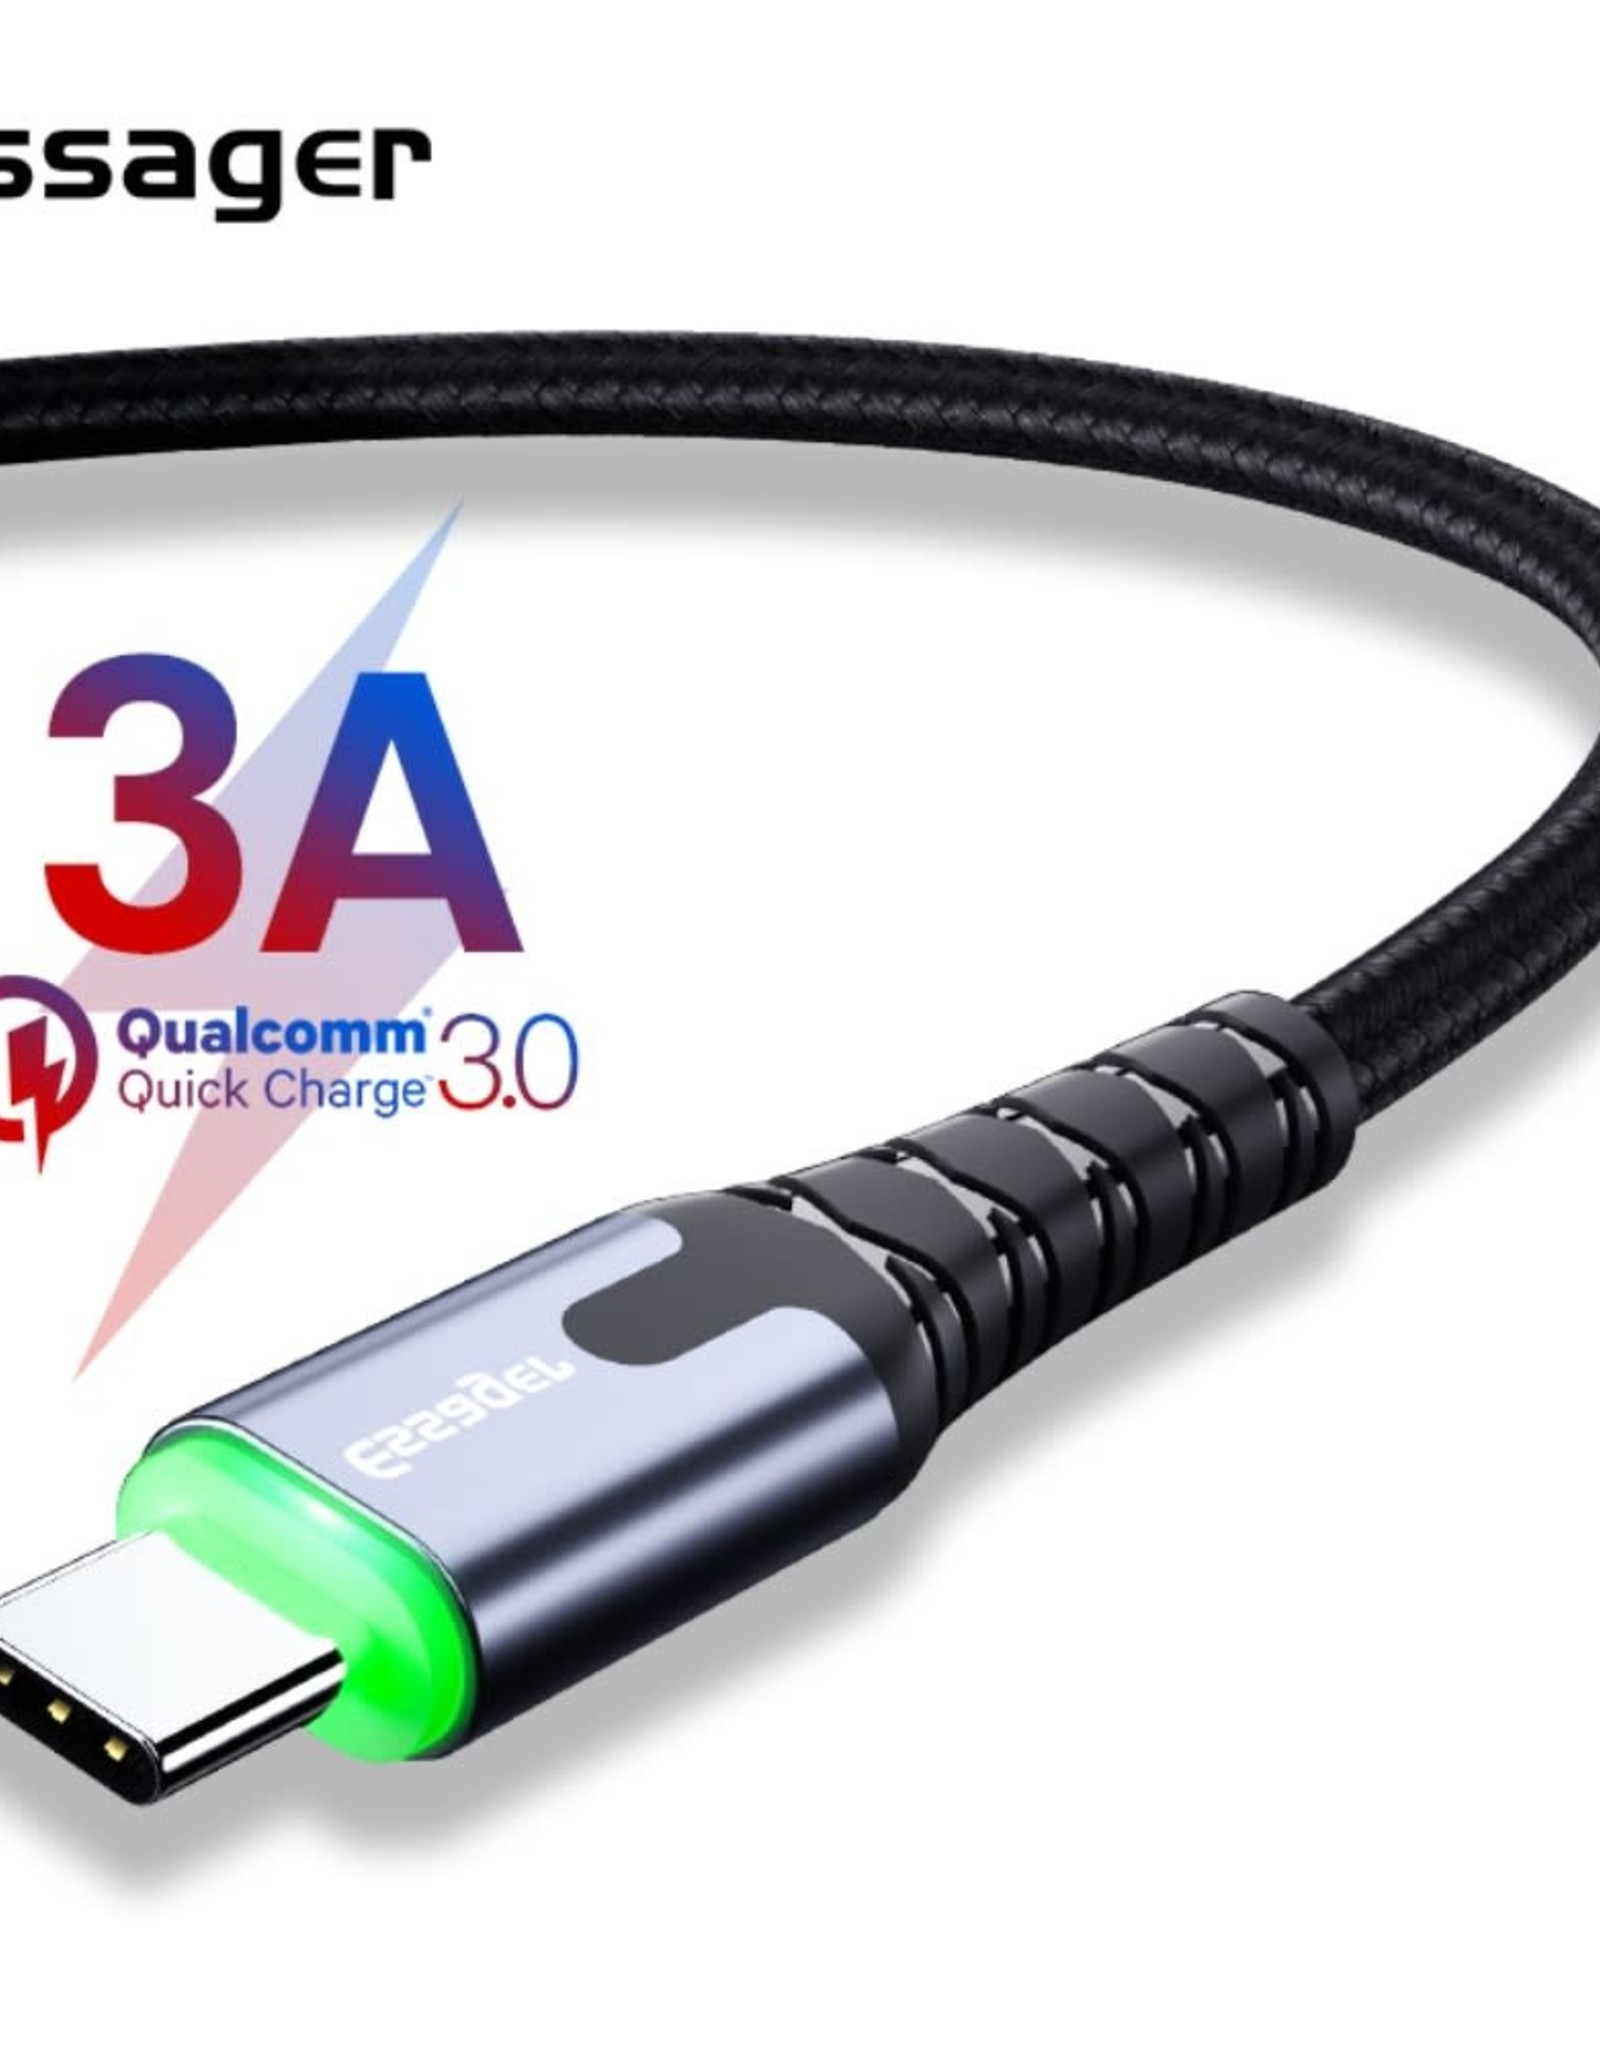 ESSAGER Type-C 3A Fast Charging Data Cable w/ LED Indicator Nylon Braided Cord 2m - Dark Grey